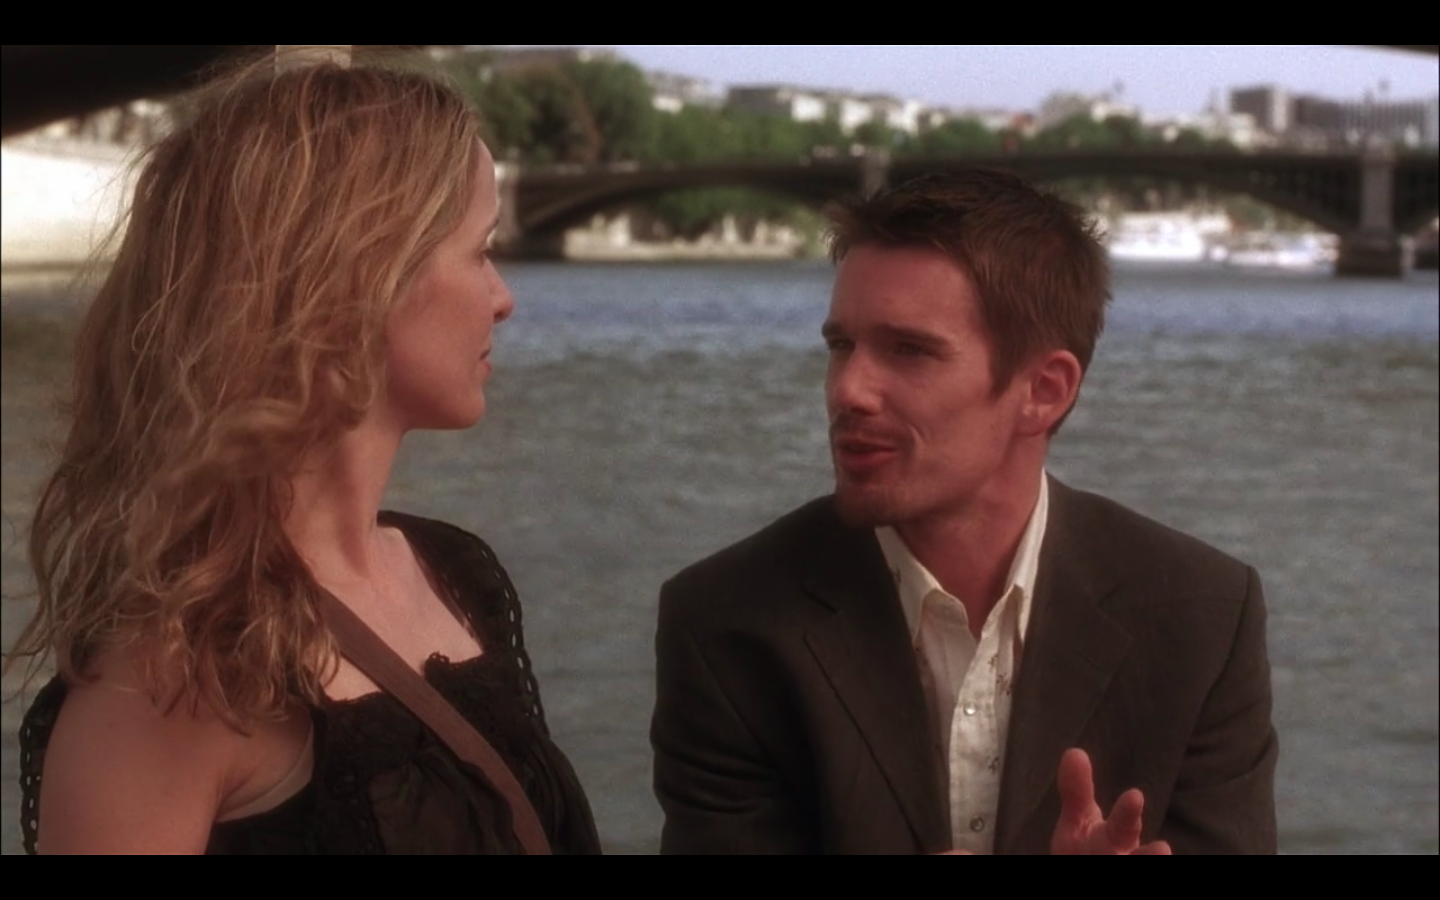 Ethan Hawke and Julie Delpy on a boat.